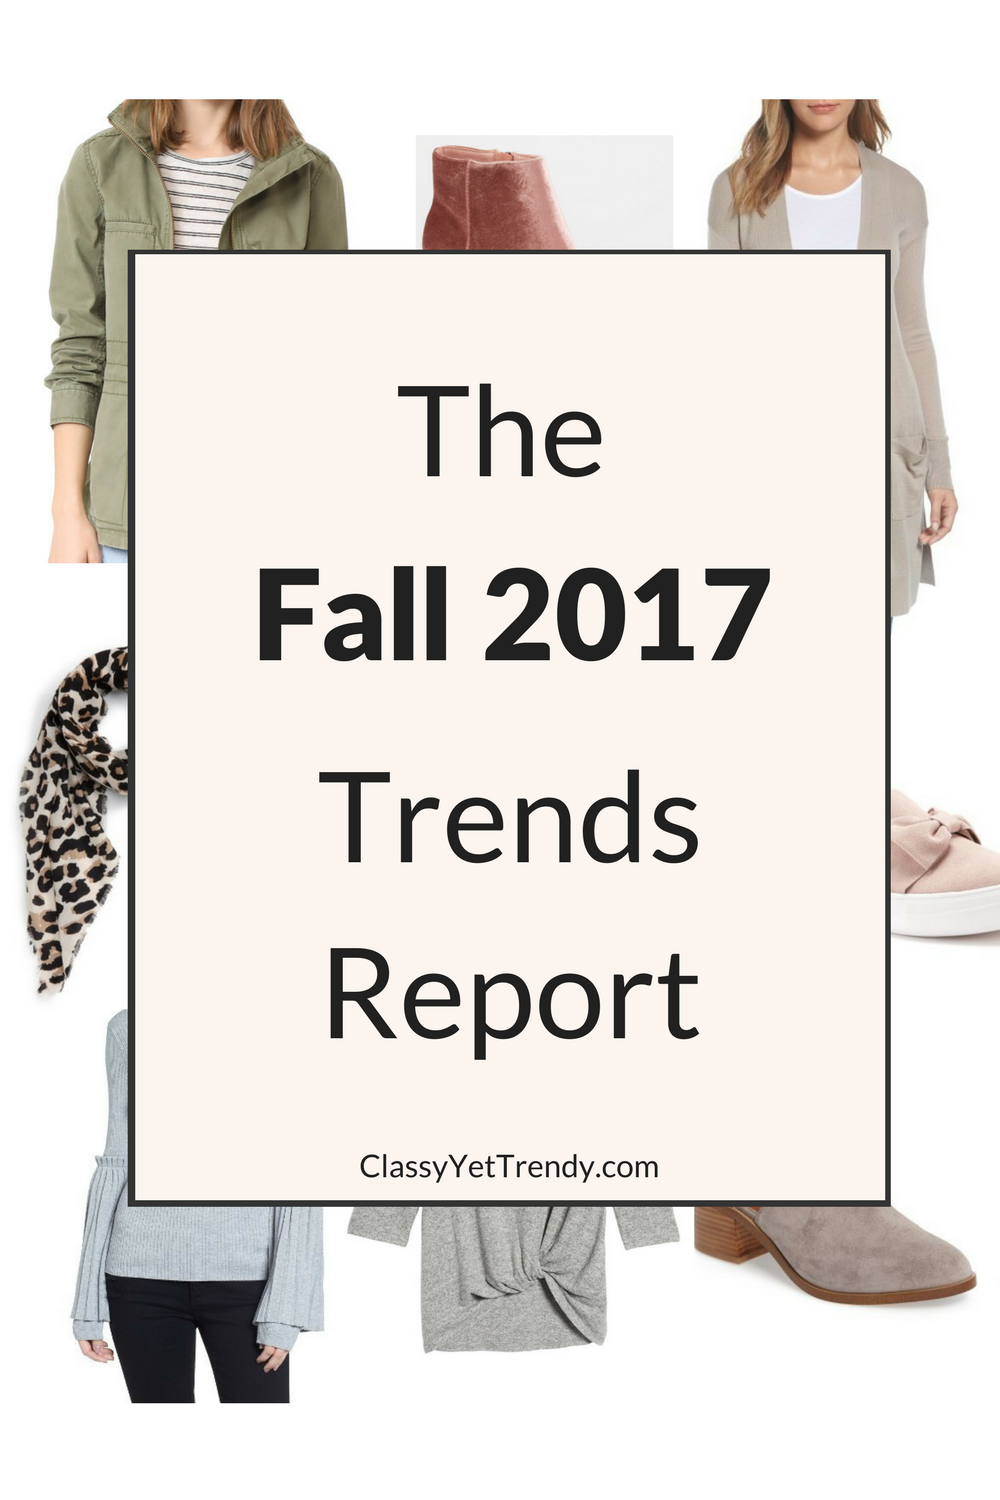 The Fall 2017 Trends Report